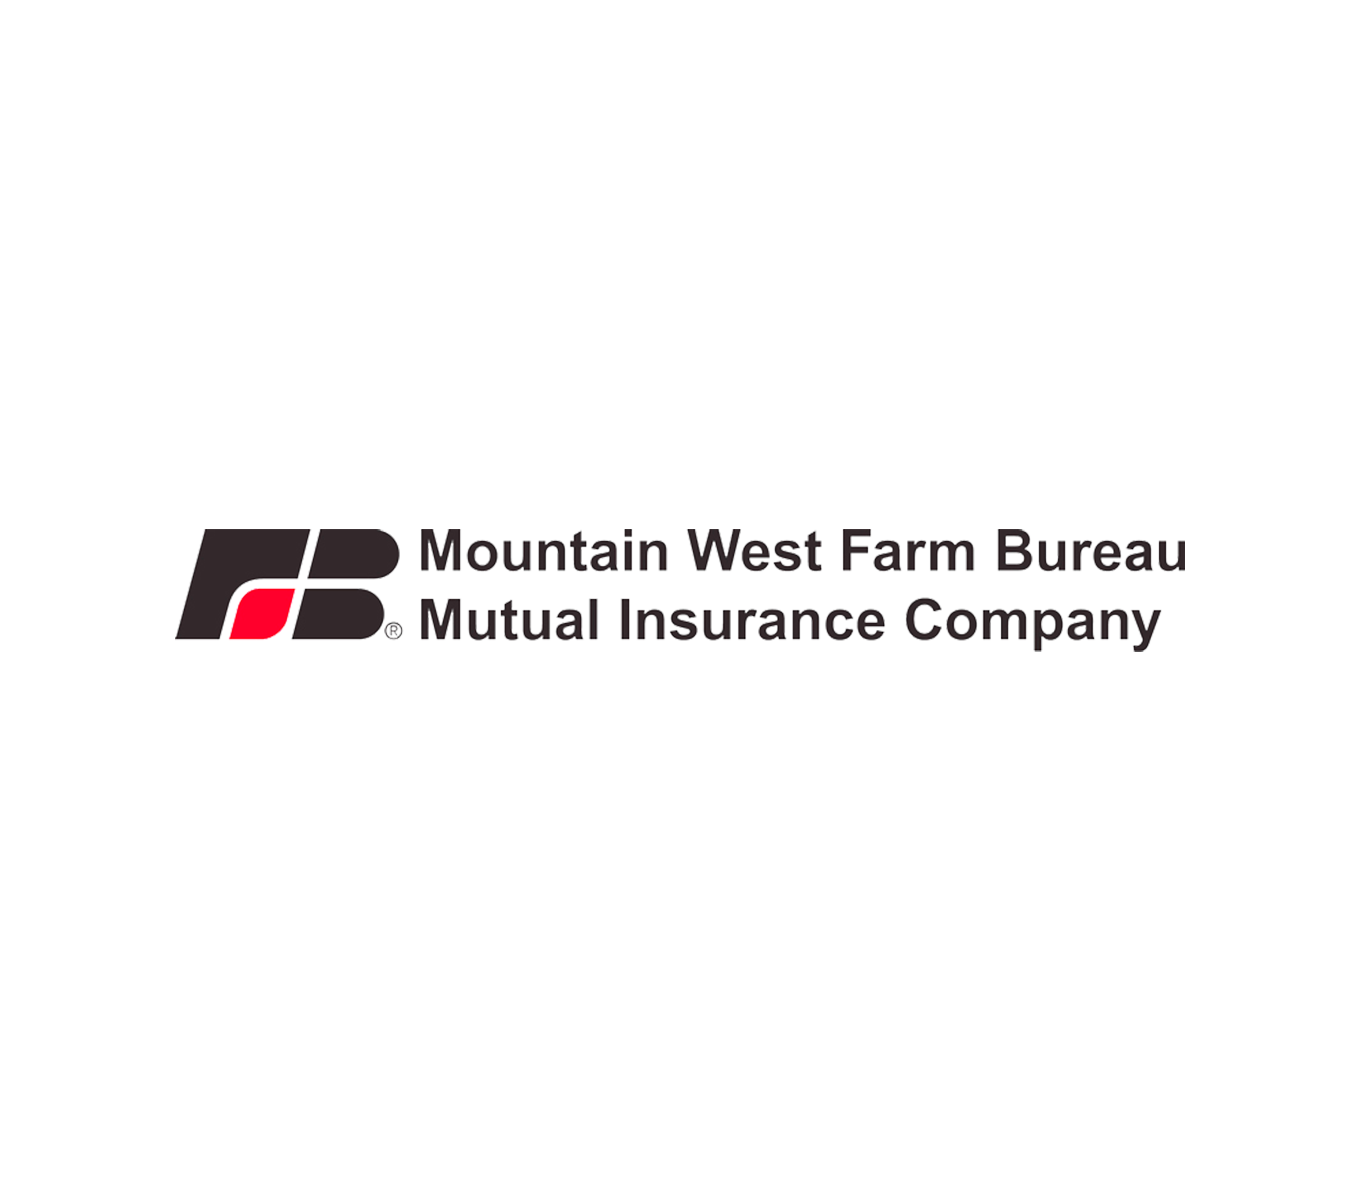 Mountain West Farm Bureau Mutual Insurance Customer Logo